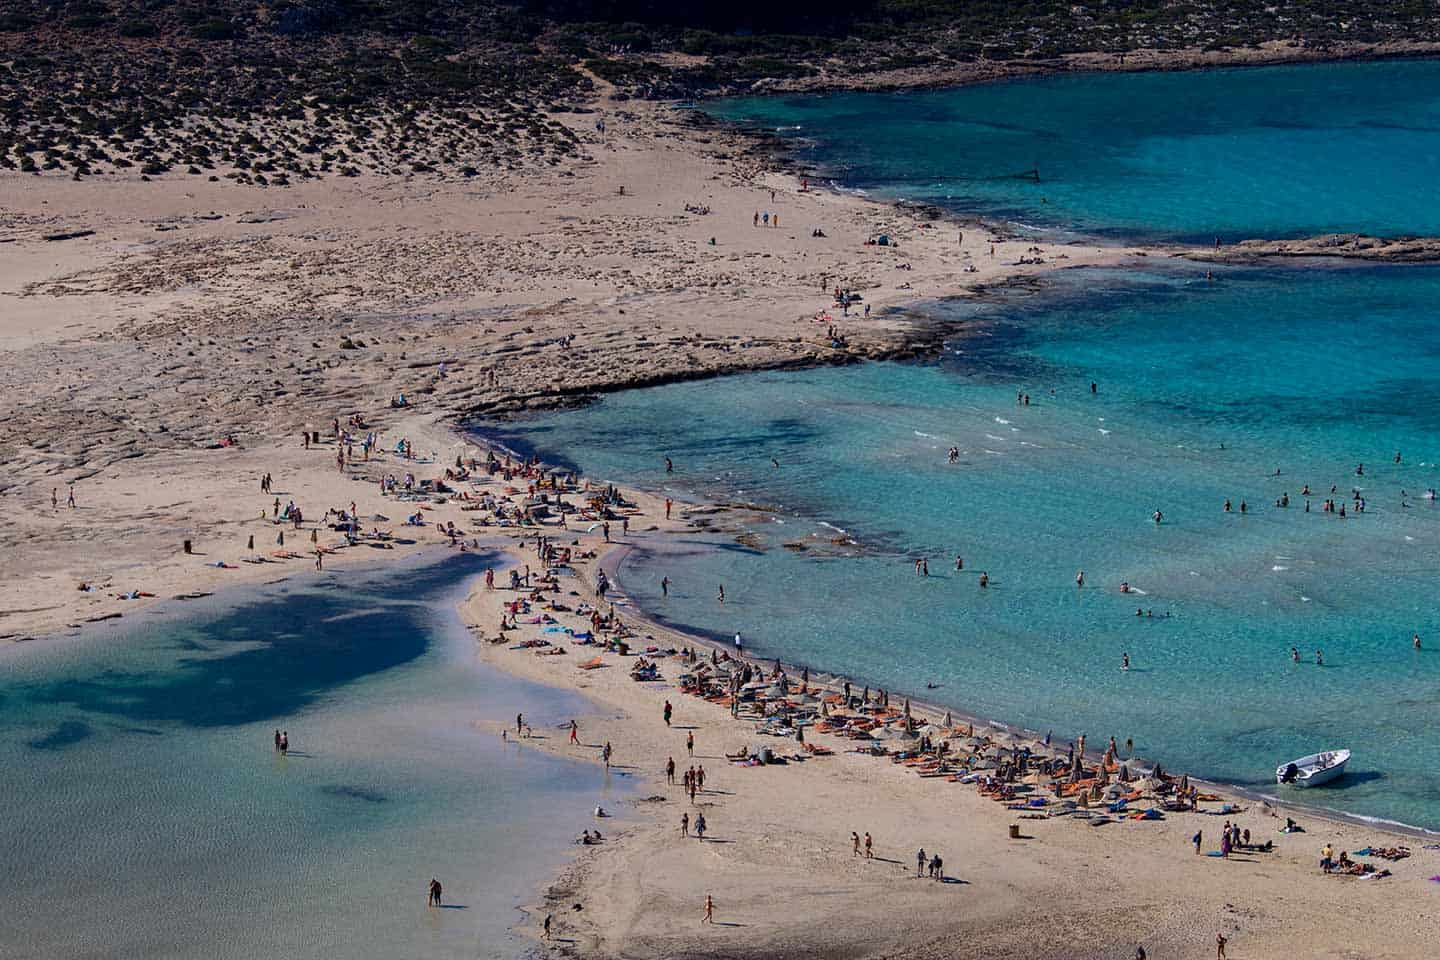 Image of the beach at Balos Chania Crete Greece